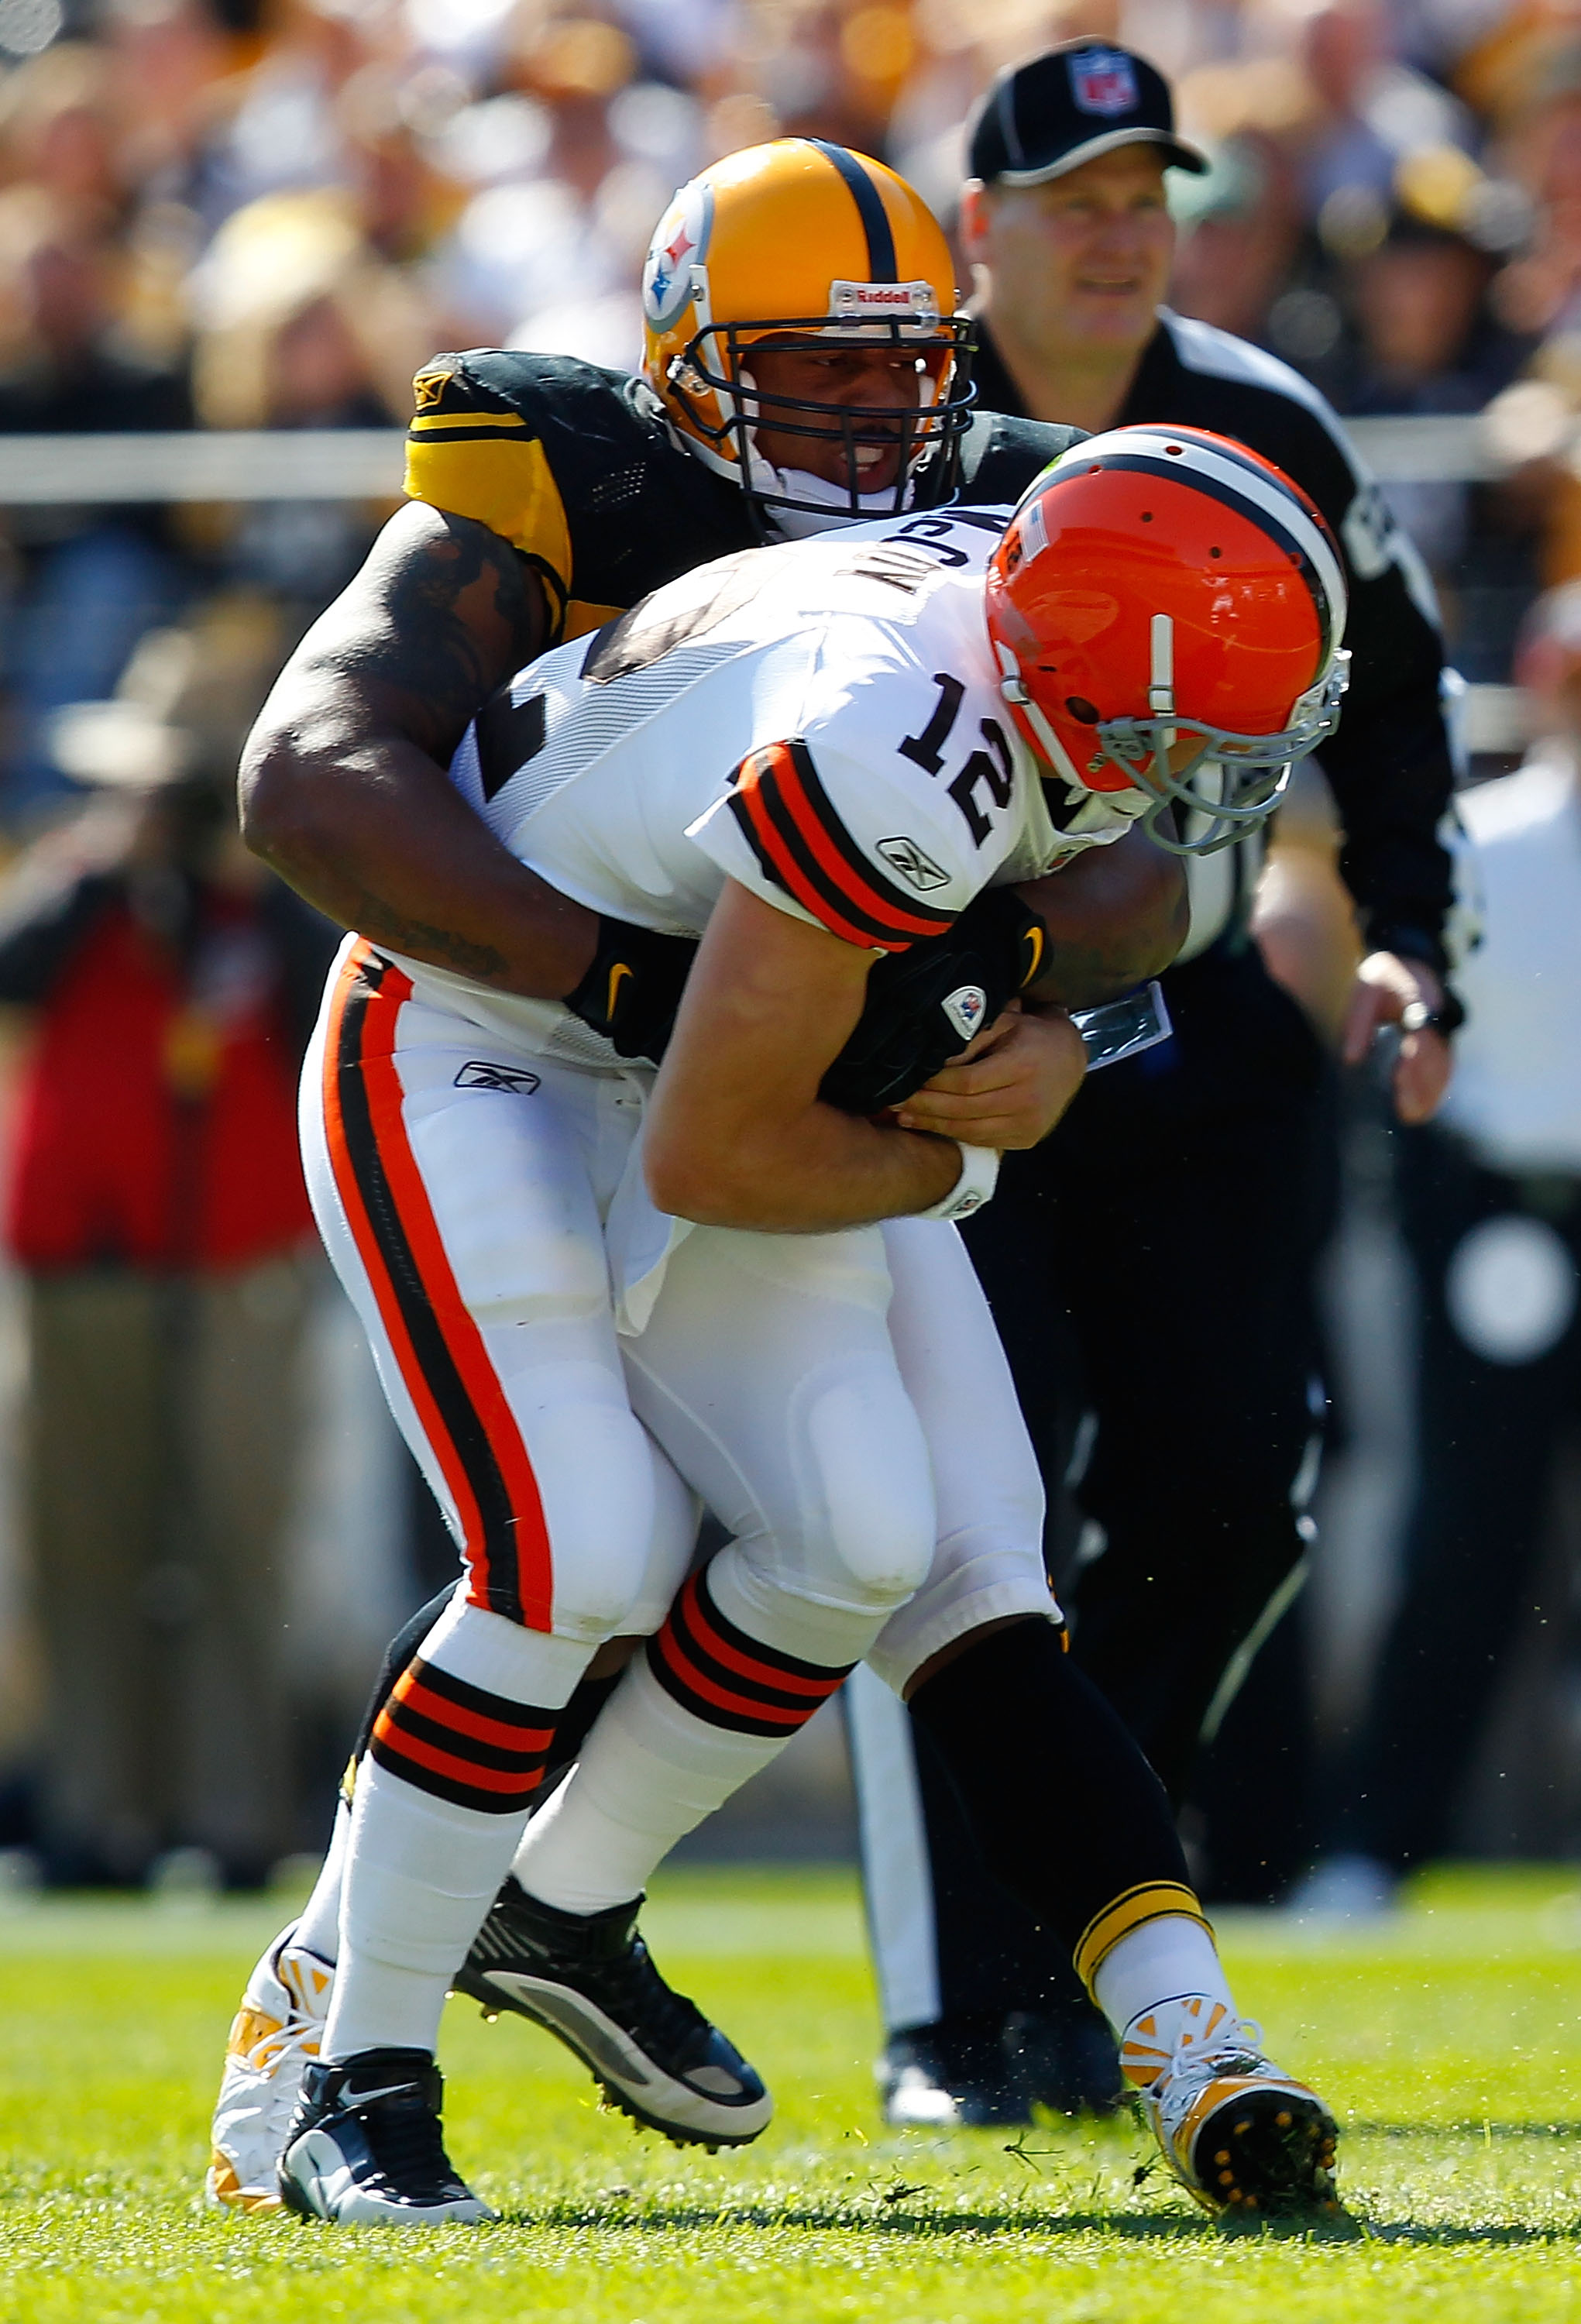 PITTSBURGH - OCTOBER 17:  LaMarr Woodley #56 of the Pittsburgh Steelers sacks Colt McCoy #12 of the Cleveland Browns during the game on October 17, 2010 at Heinz Field in Pittsburgh, Pennsylvania.  (Photo by Jared Wickerham/Getty Images)